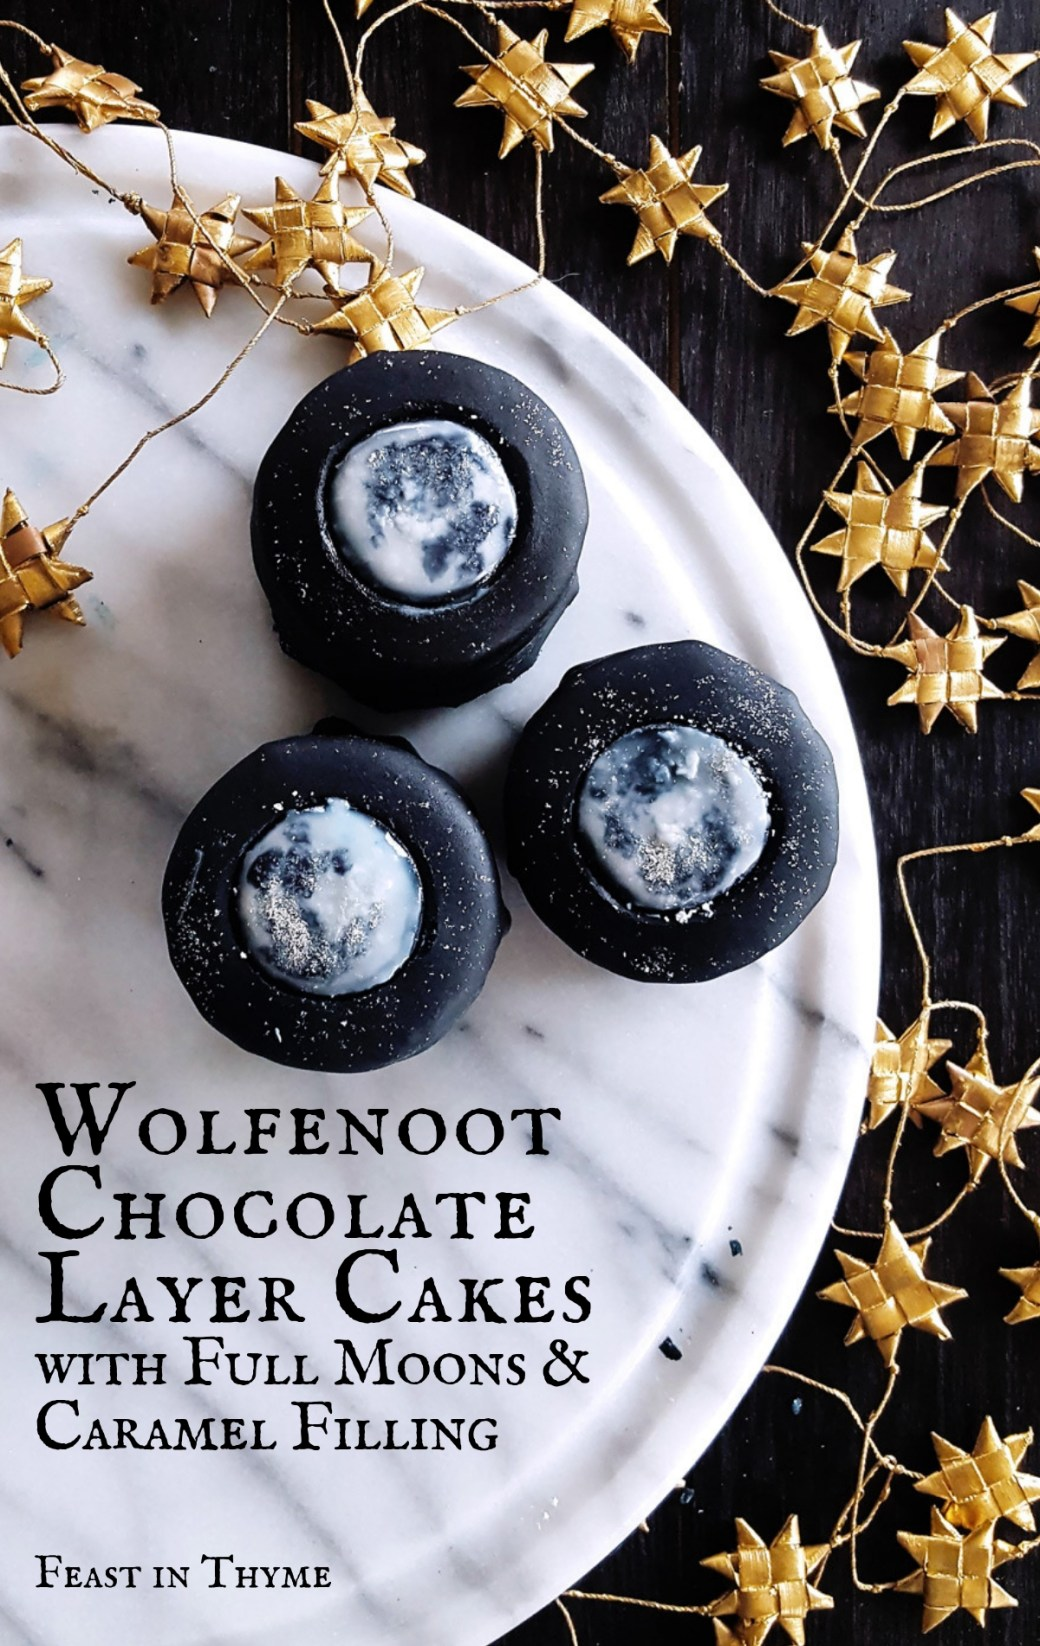 Filled with salted caramel and decorated with full moons, these chocolate layer cakes are the perfect sweet treat for celebrating Wolfenoot on November 23rd! | #wolfenoot #wolfspirit #chocolate #moon FeastInThyme.com